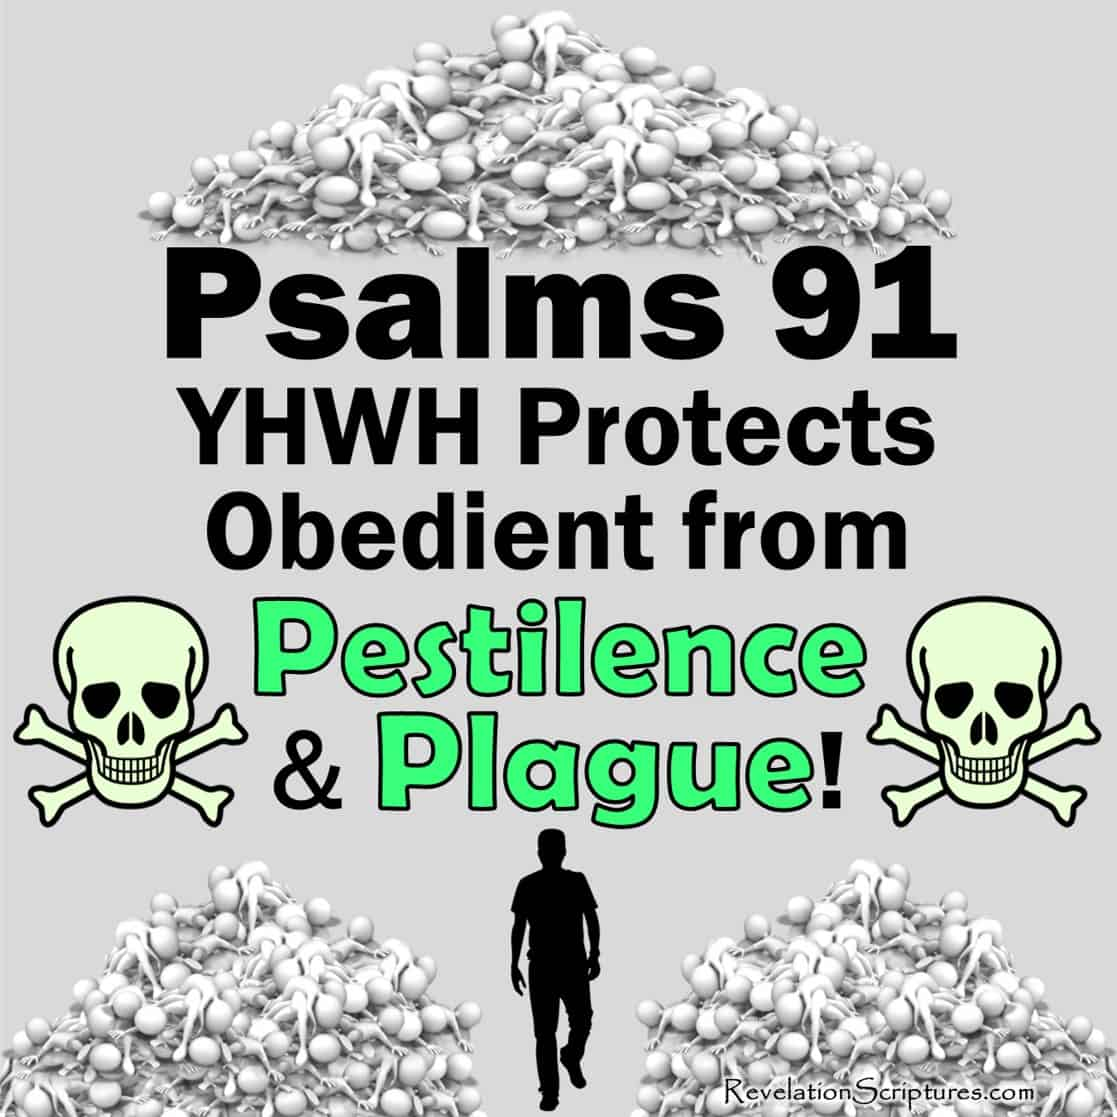 Pestilence,plague,disease,death,virus,CDC,infectious disease,pandemic,infection,pandemic,bacteria,coronaviruses,bubonic plague,Black Death,the Plague,curses,curses disobedience,plague disobedience,disobedience,commands,cure,outbreak,great plague,Psalms 91,protection from disease,protection from plague,protection from disease,angelic protection,cover with feathers,thousand fall at your side,ten thousand at your right hand,destructive plague,protection of the most high,He that dwelleth in the secret place of the most High, shall abide under the shadow of the Almighty,I will say of the Lord,He is my refuge and my fortress,my God,in him will I trust,he shall deliver thee,snare of the fowler,noisome pestilence,He shall cover thee with his feathers,and under his wings shalt thou trust,his truth shall be thy shield and buckler,Thou shalt not be afraid,for the terror by night,nor for the arrow that flieth by day,Nor for the pestilence that walketh in darkness,nor for the destruction that wasteth at noonday,A thousand shall fall at thy side,ten thousand at thy right hand,but it shall not come nigh thee,Only with thine eyes shalt thou behold,see the reward of the wicked,Because thou hast made the Lord,which is my refuge,even the most High,thy habitation,There shall no evil befall thee, neither shall any plague come nigh thy dwelling,For he shall give his angels charge over thee,to keep thee in all thy ways,They shall bear thee up in their hands, lest thou dash thy foot against a stone,Thou shalt tread upon the lion and adder,the young lion and the dragon,trample under feet,Because he hath set his love upon me,therefore will I deliver him,I will set him on high,because he hath known my name,He shall call upon me,I will answer him,I will be with him in trouble,I will deliver him,honour him,With long life will I satisfy him,and shew him my salvation,He who dwells in the shelter of the Most High,will abide in the shadow of the Almighty, I will say[a] to the LORD,My refuge and my 